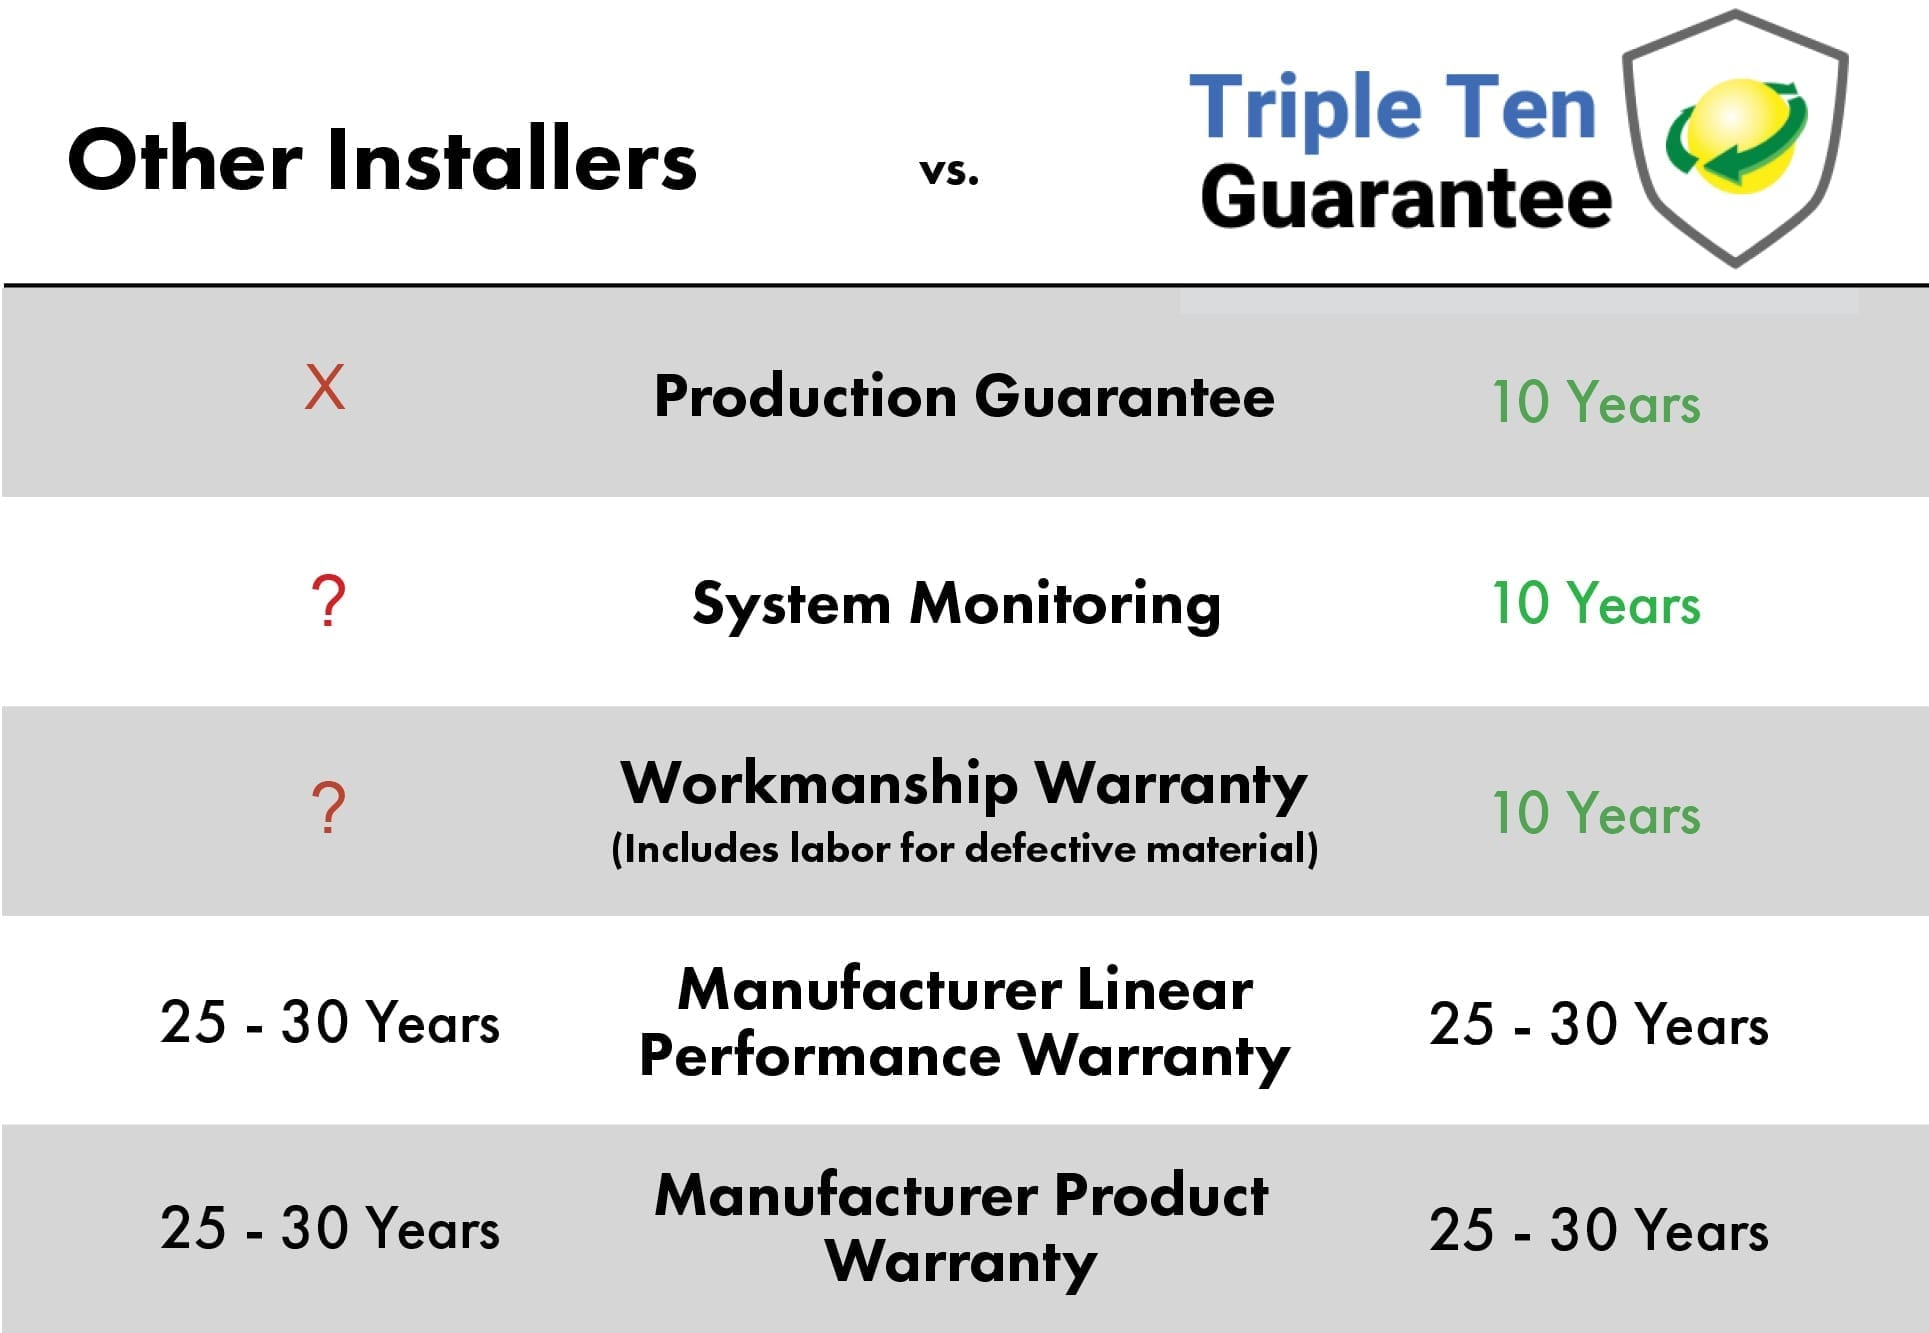 Other Installers v Triple Ten